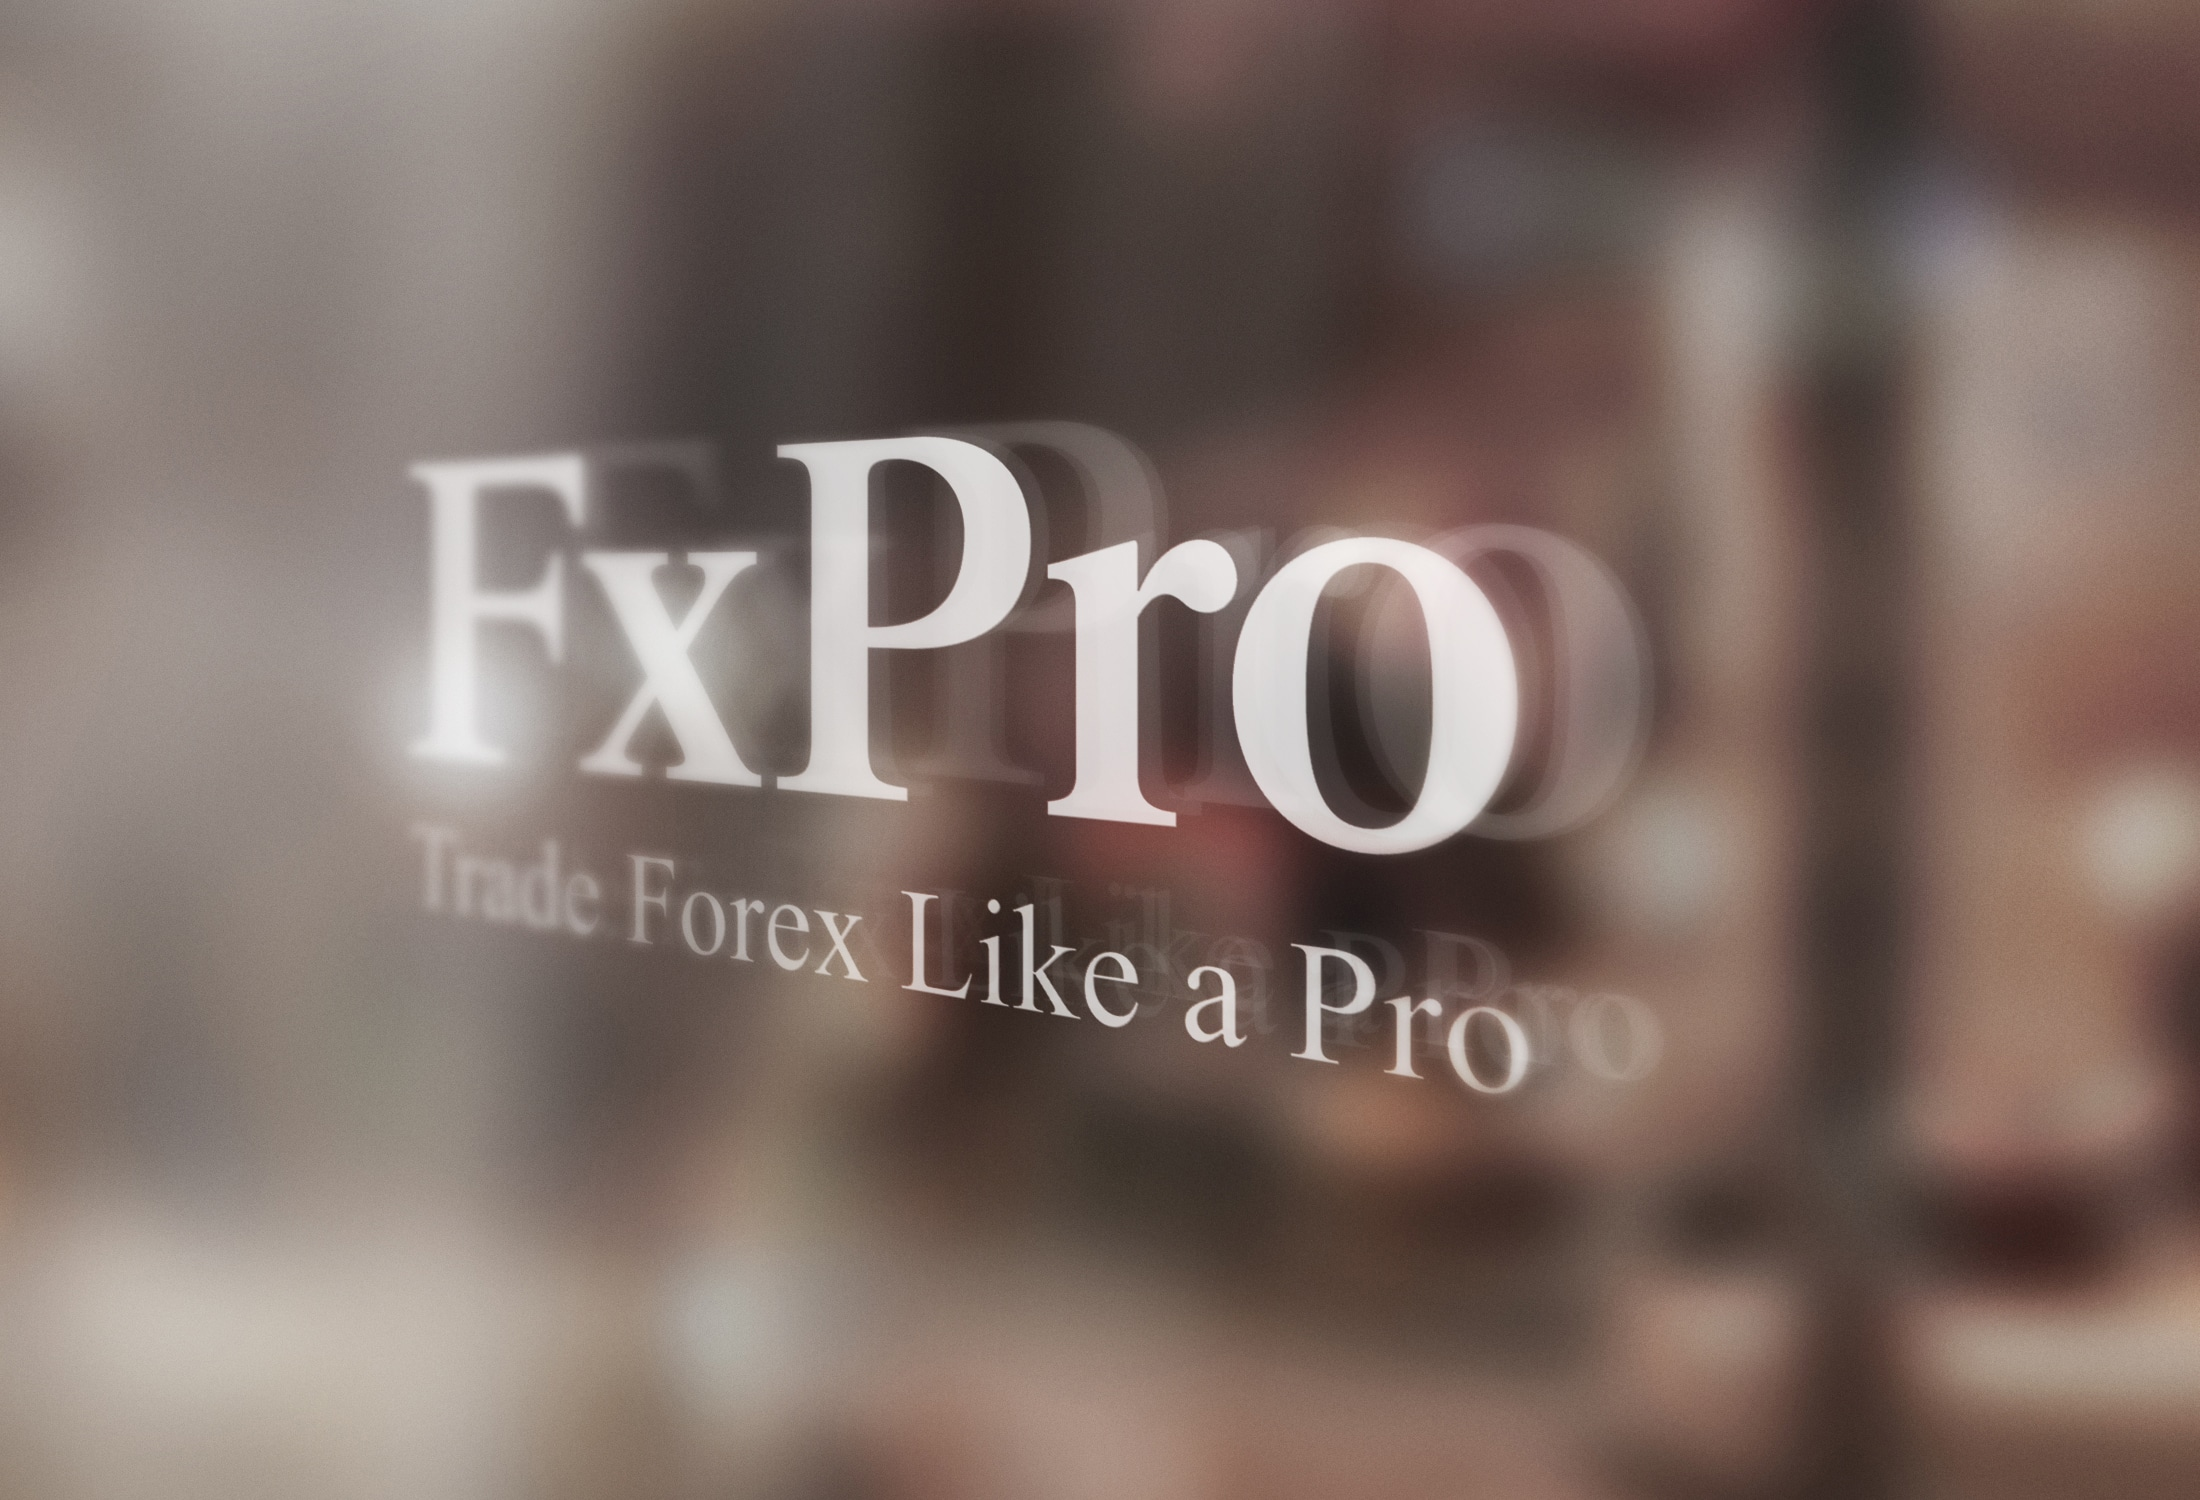 FxPro Transparency